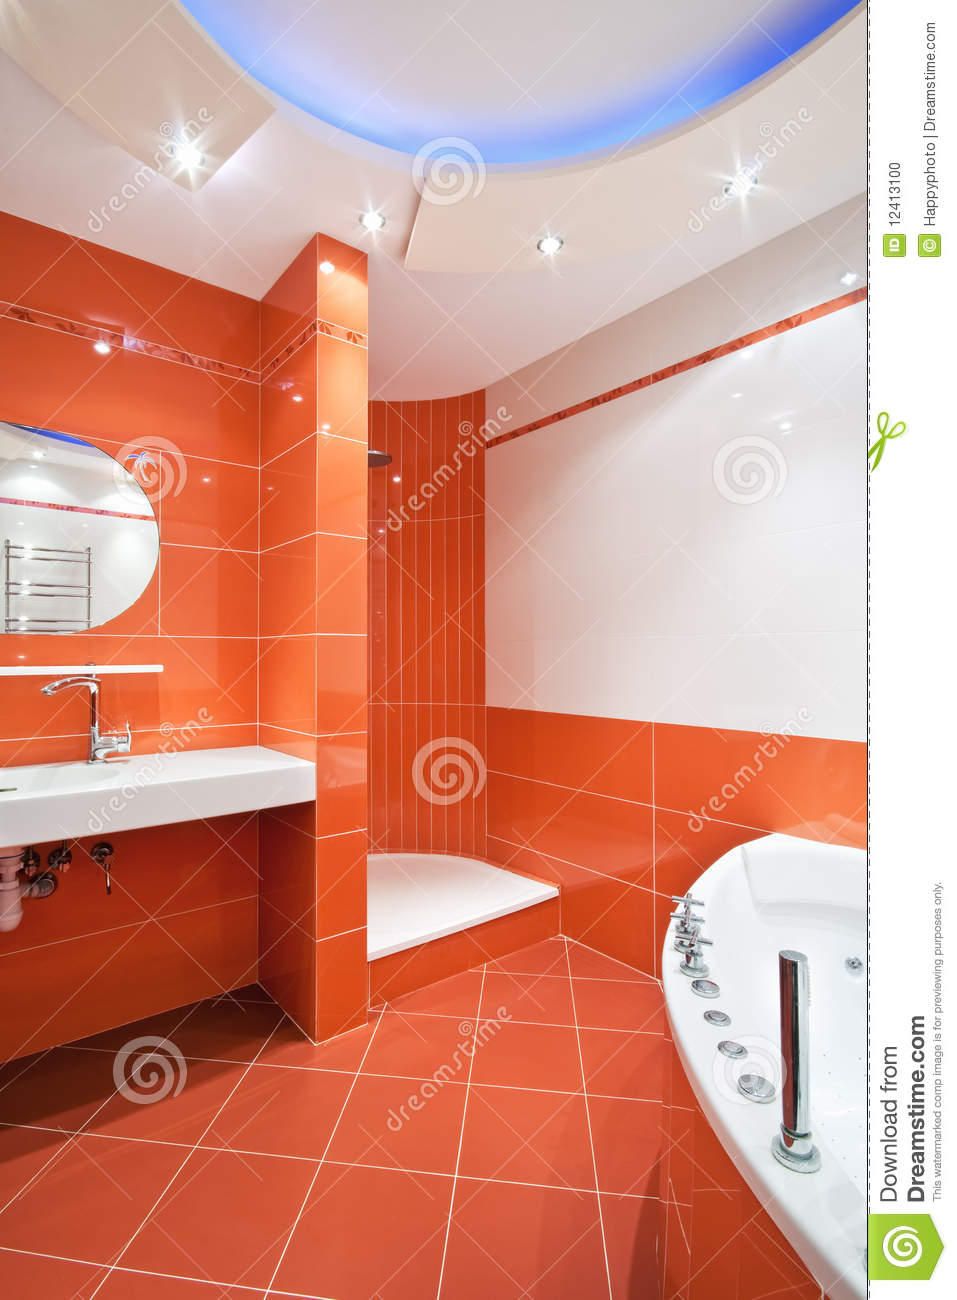 Bathroom In Orange And White Colors Stock Photo Image Of